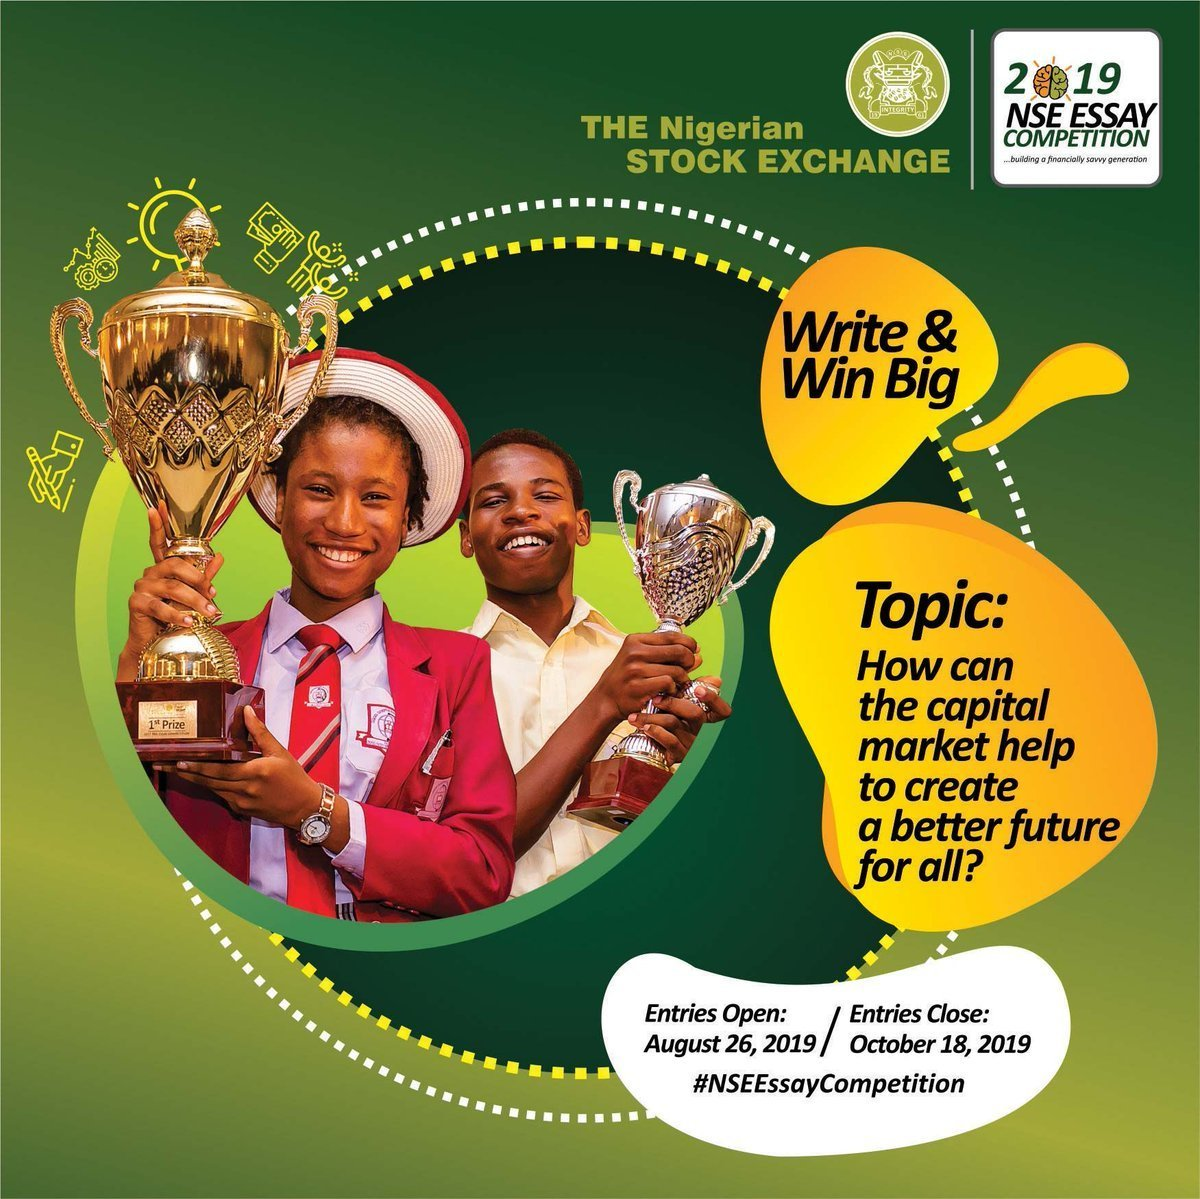 Nigerian Stock Exchange (NSE) Essay Competition 2019Nigerian Stock Exchange (NSE) Essay Competition 2019